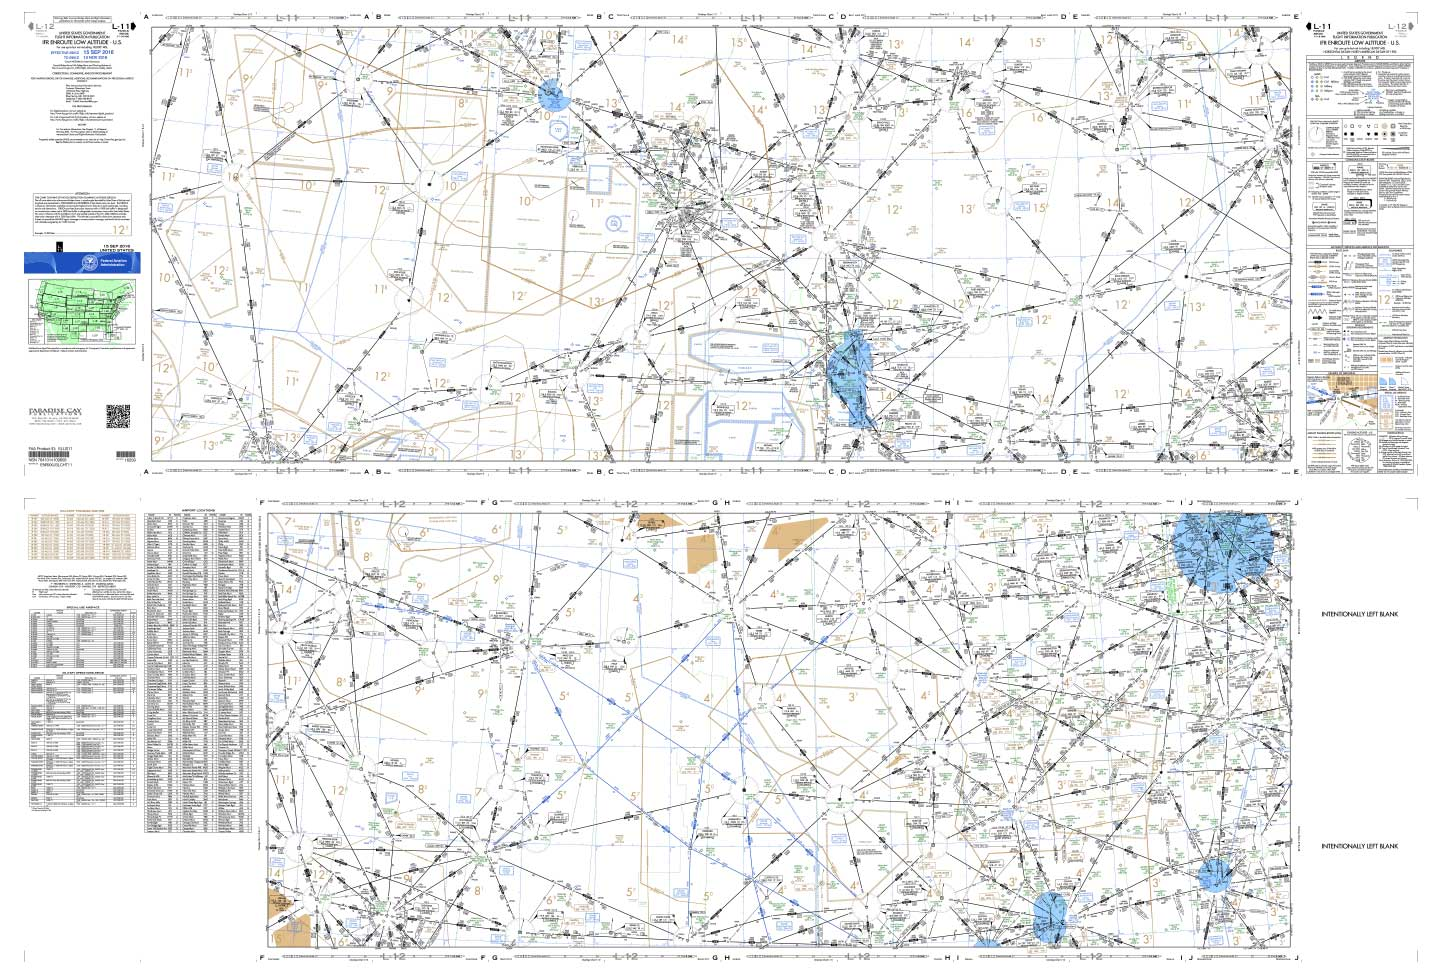 Enroute Charts, Enroute Charts Low Altitude (Rolled)